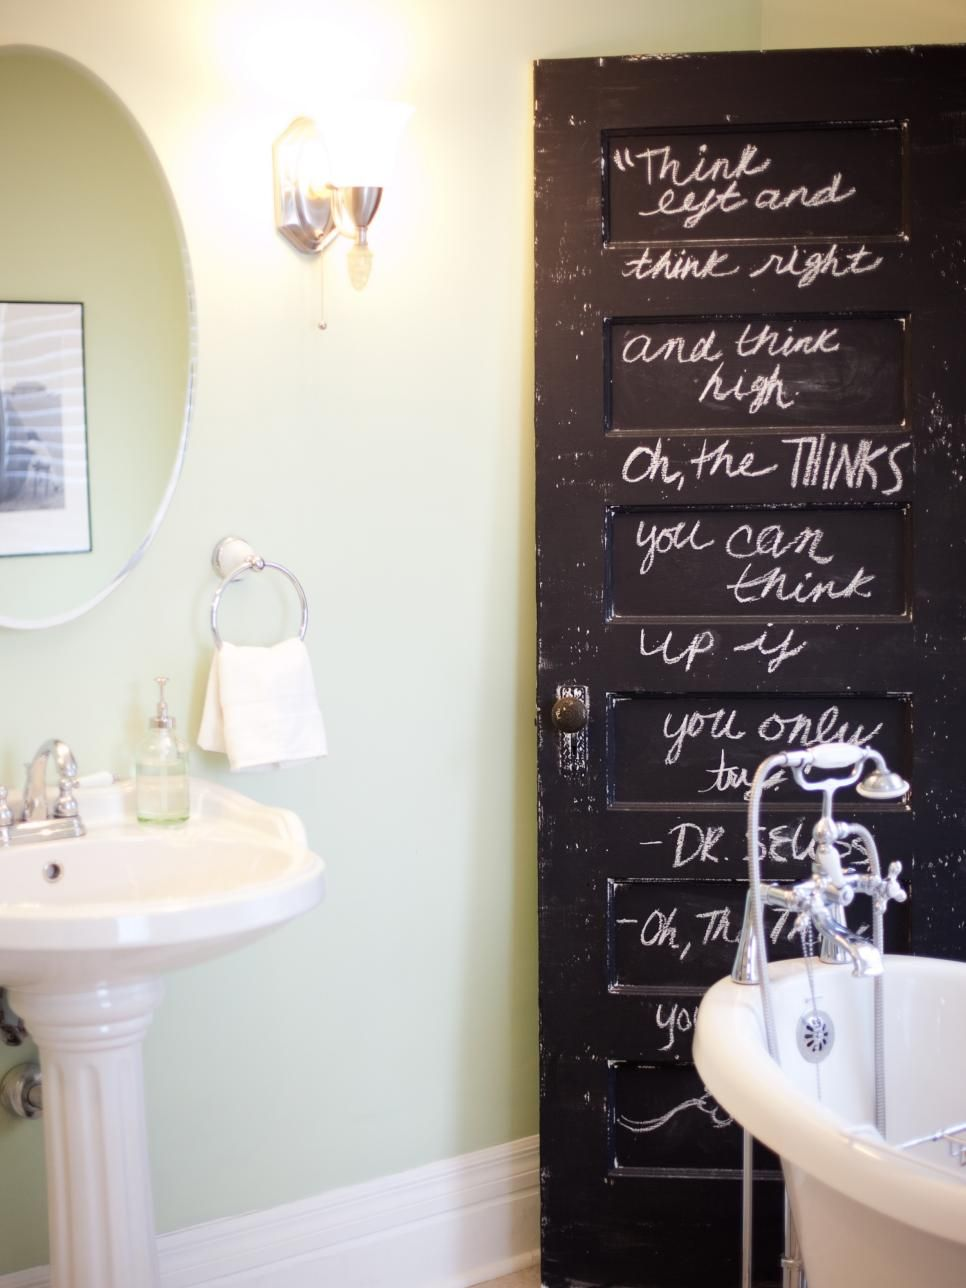 Original_Birdhouseinteriordesignchalkboardpaintbathroom Prepossessing Painting Small Bathroom Decorating Design